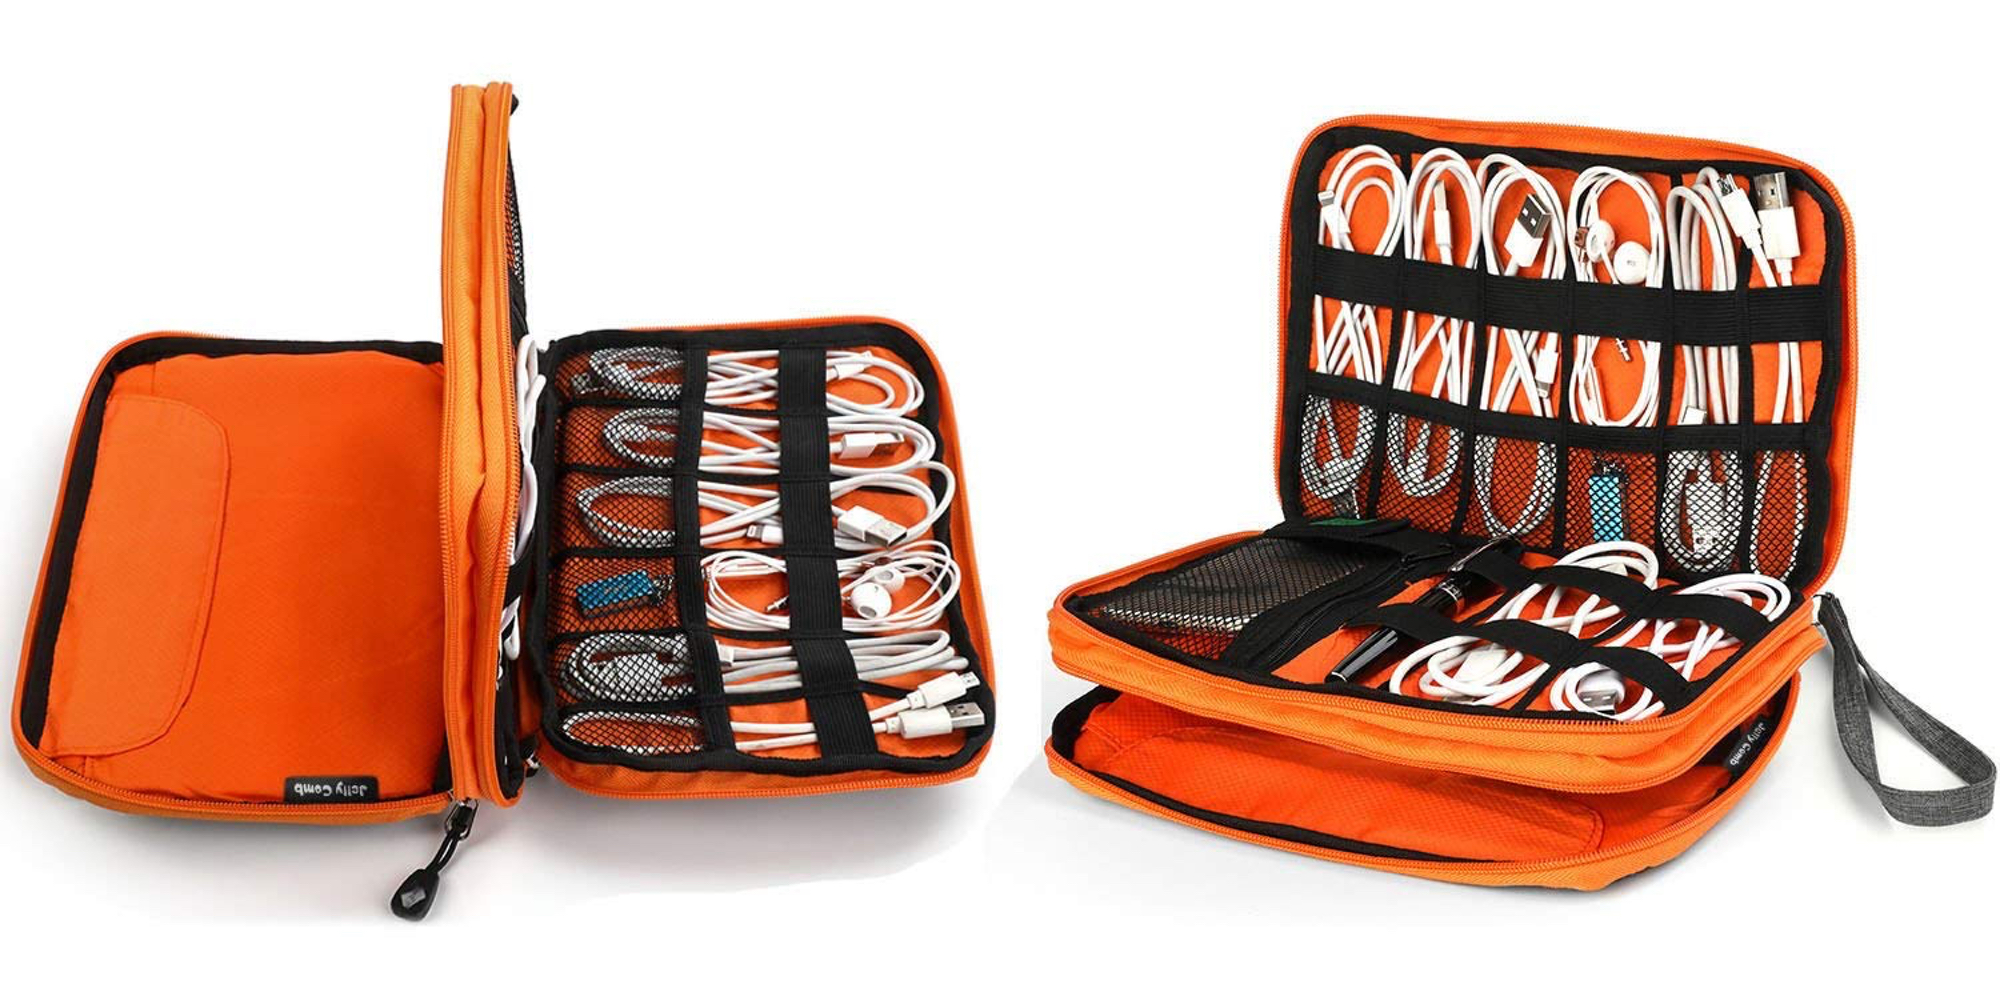 This waterproof cable organizer keeps your gear nice and tidy at under $10 shipped